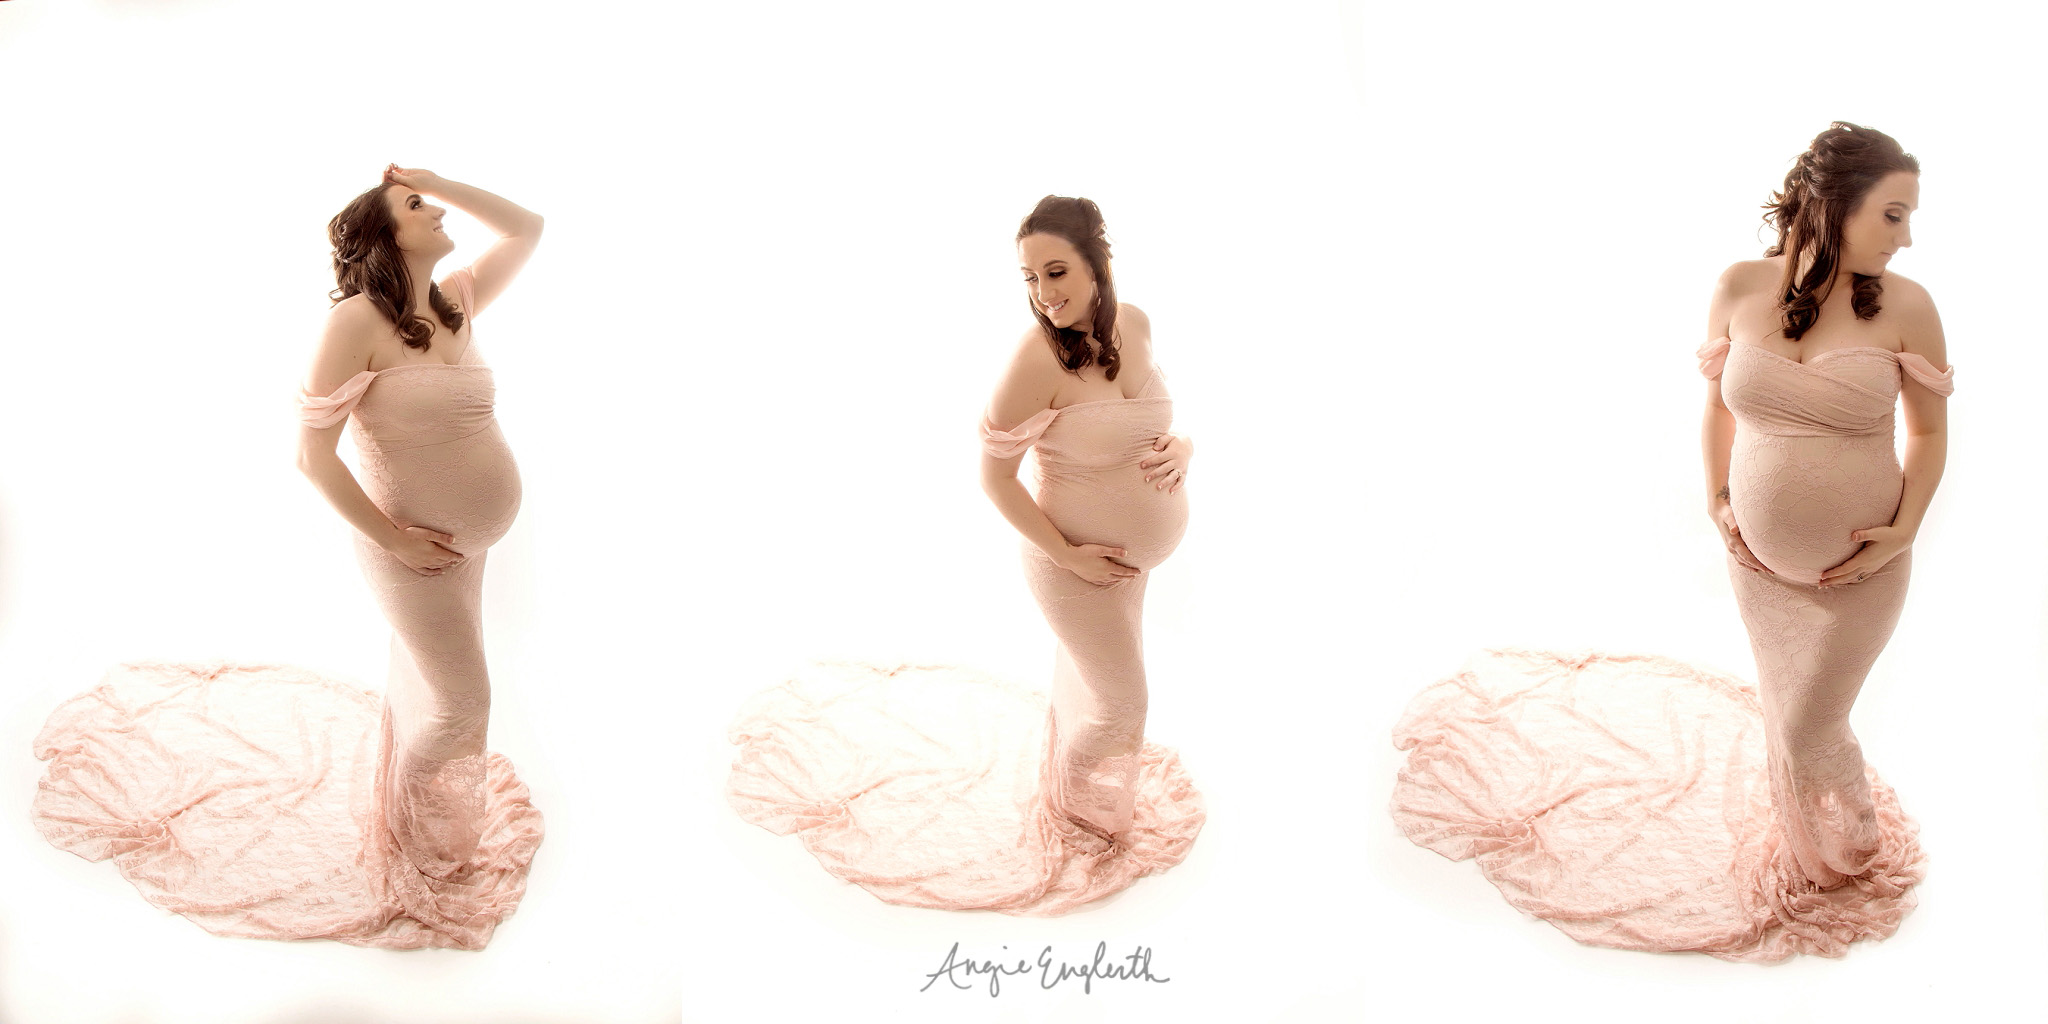 Lancaster_maternity_and_newborn_photographer_angie_englerth_006.jpg